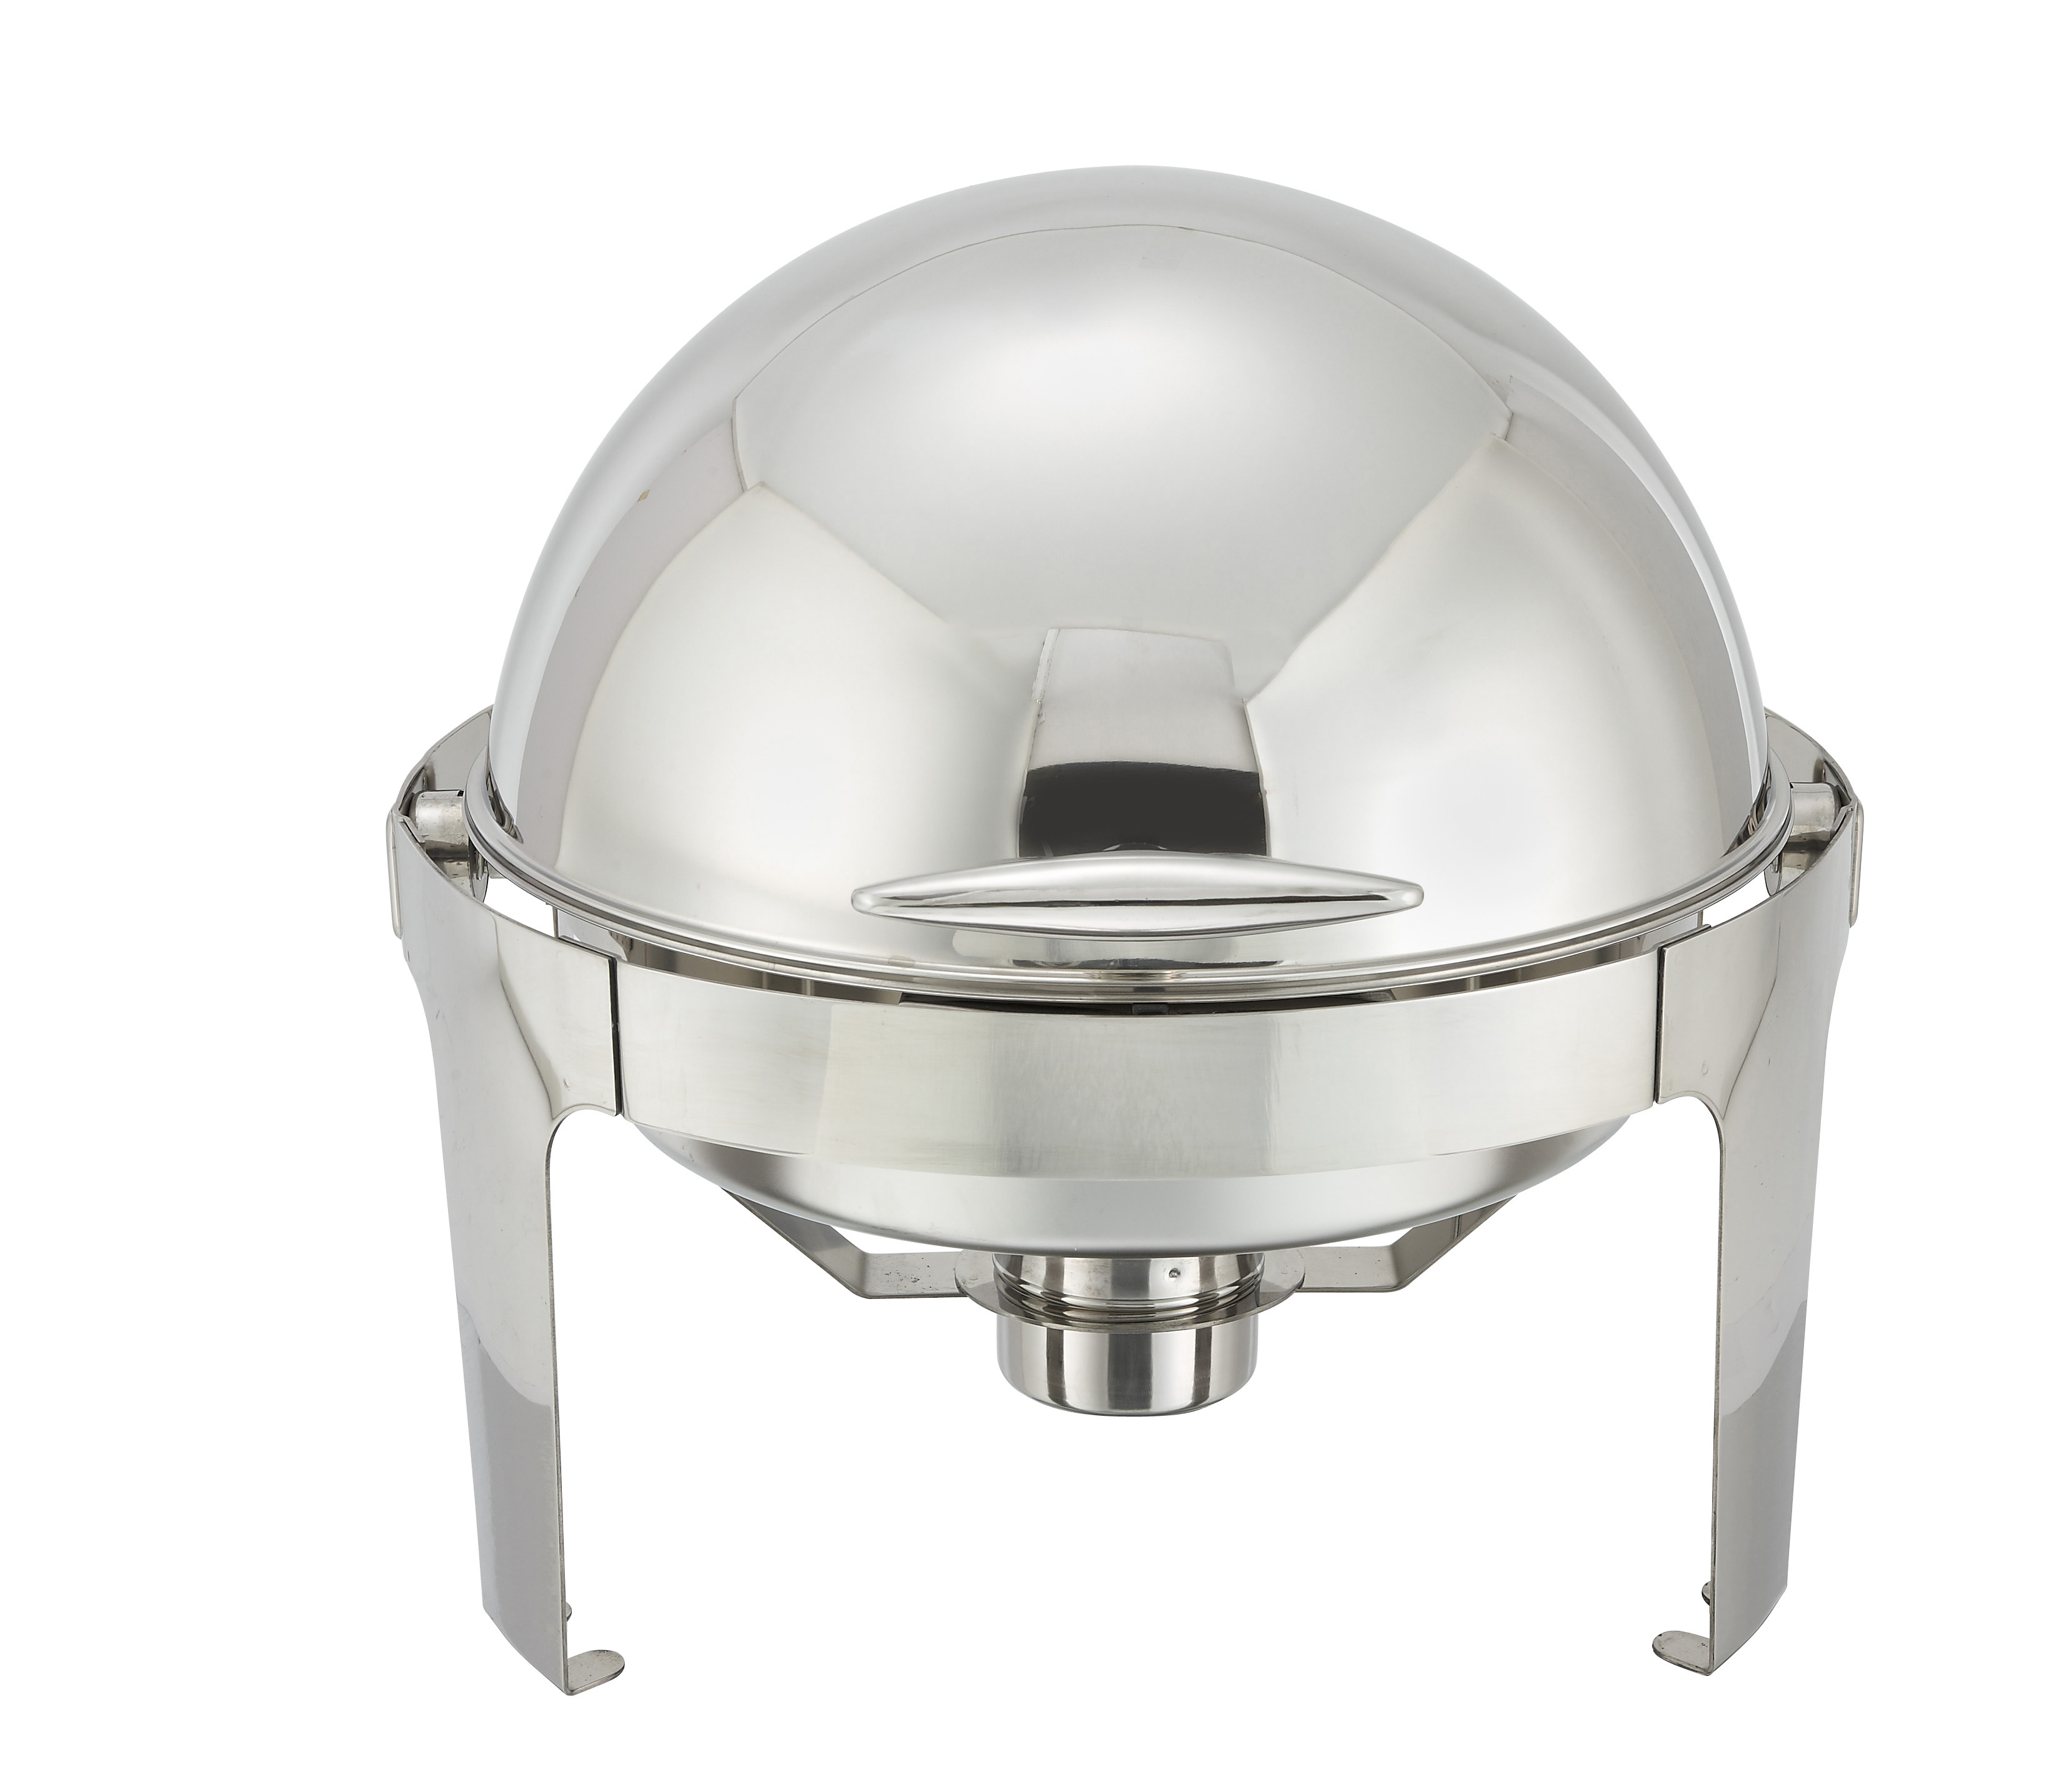 6 Qt, Round Roll Top Chafer